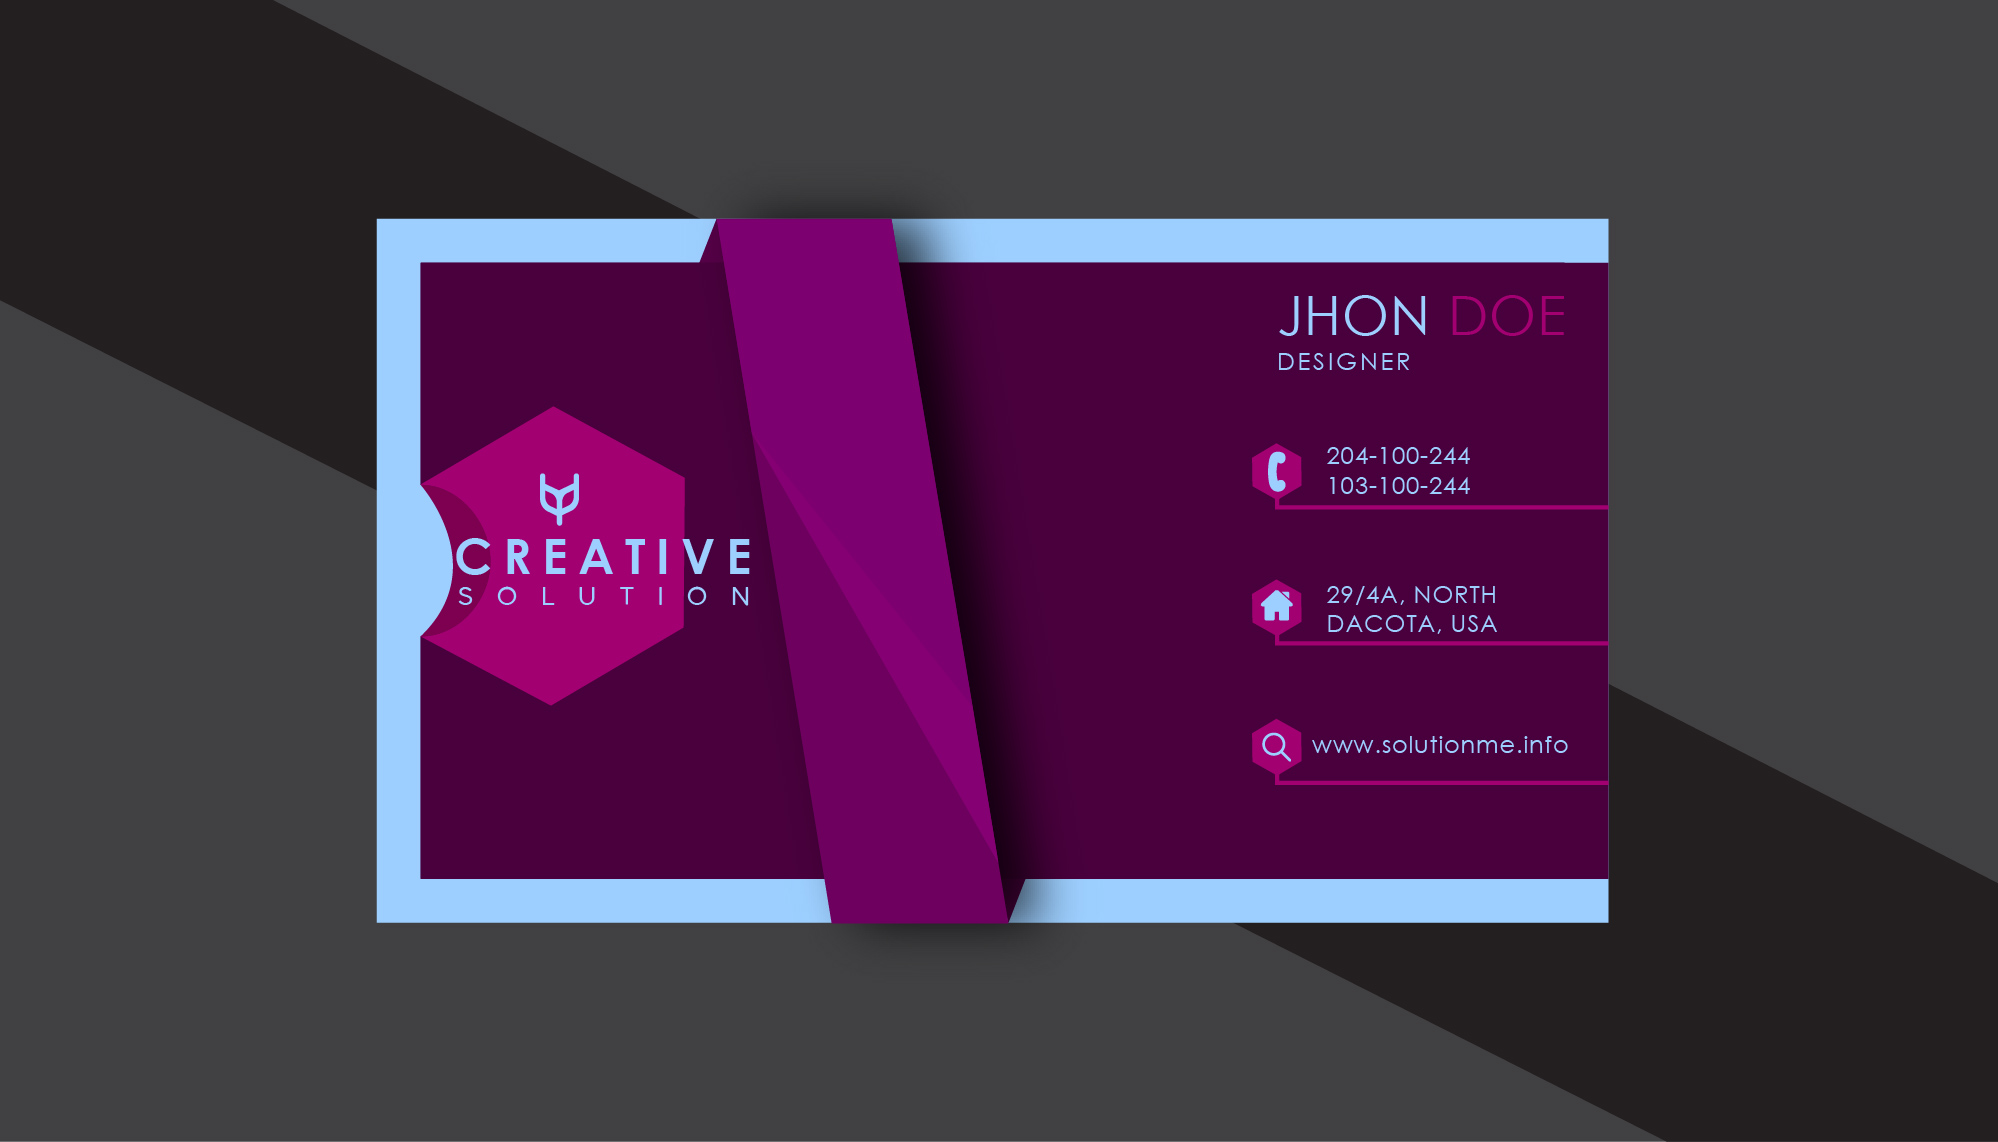 Great business cards are now available for you. Please contact me for unique cards.